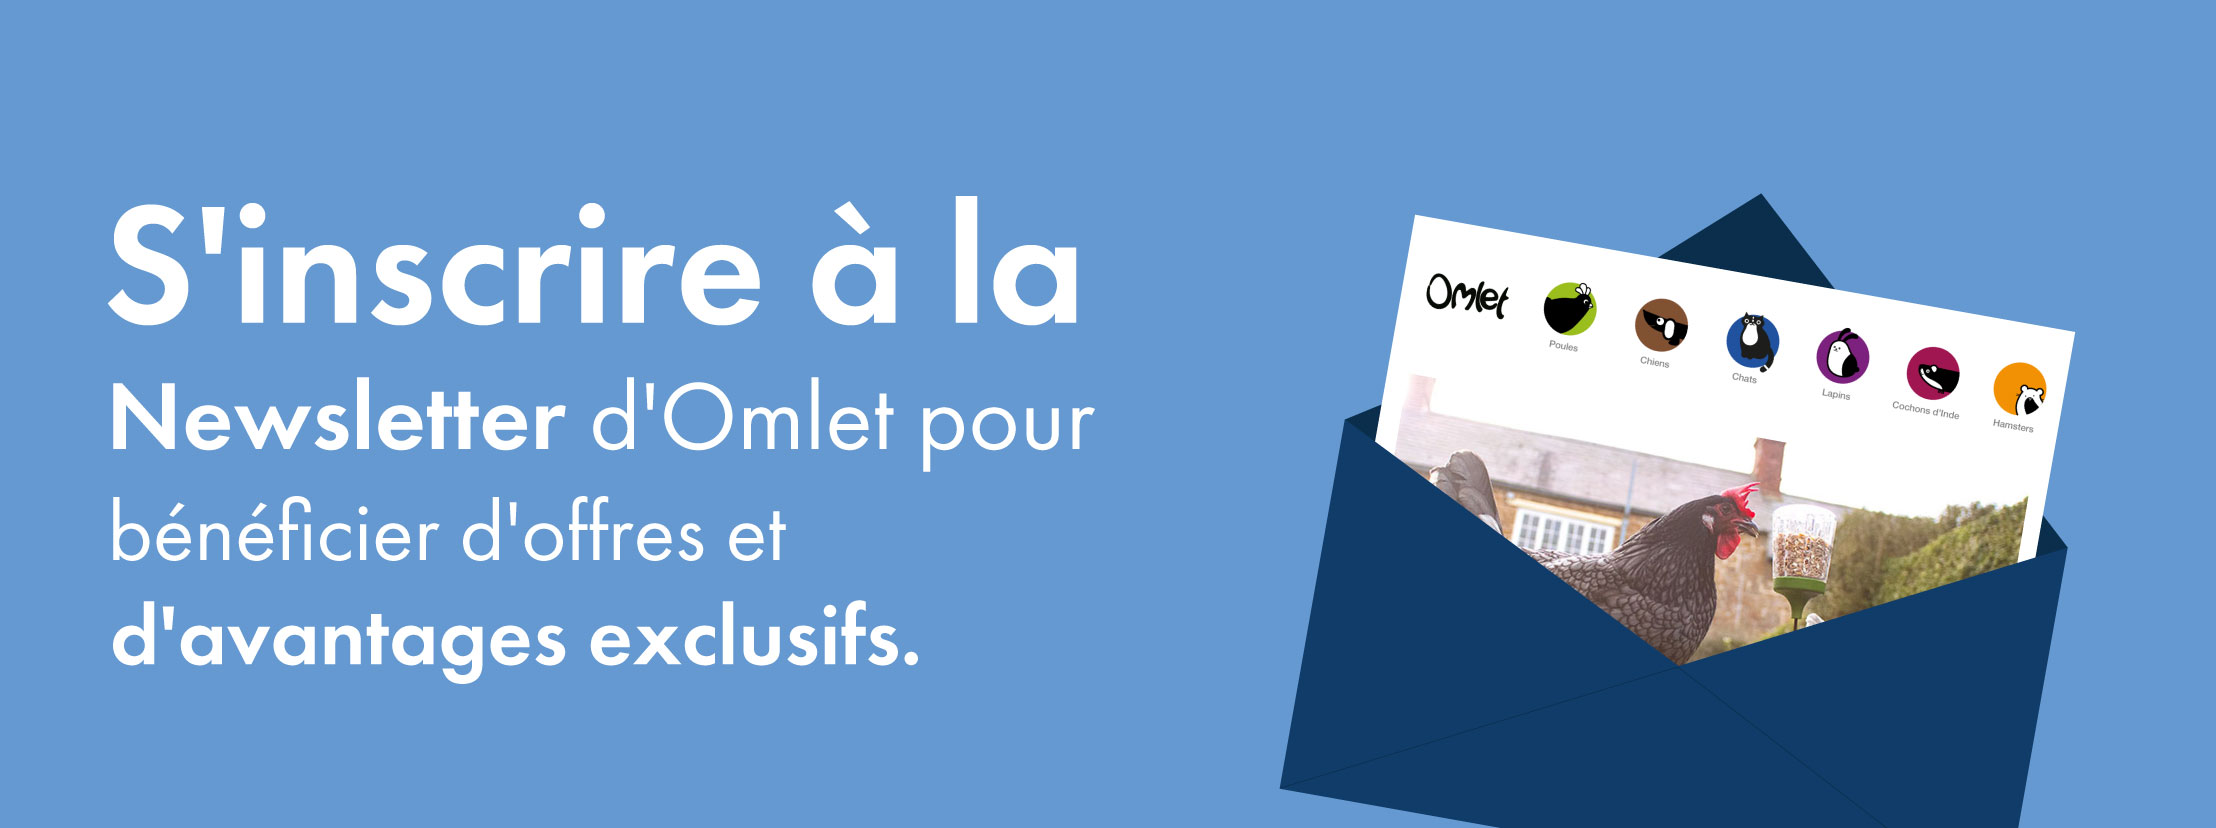 S'incrire à la newsletter d'Omlet